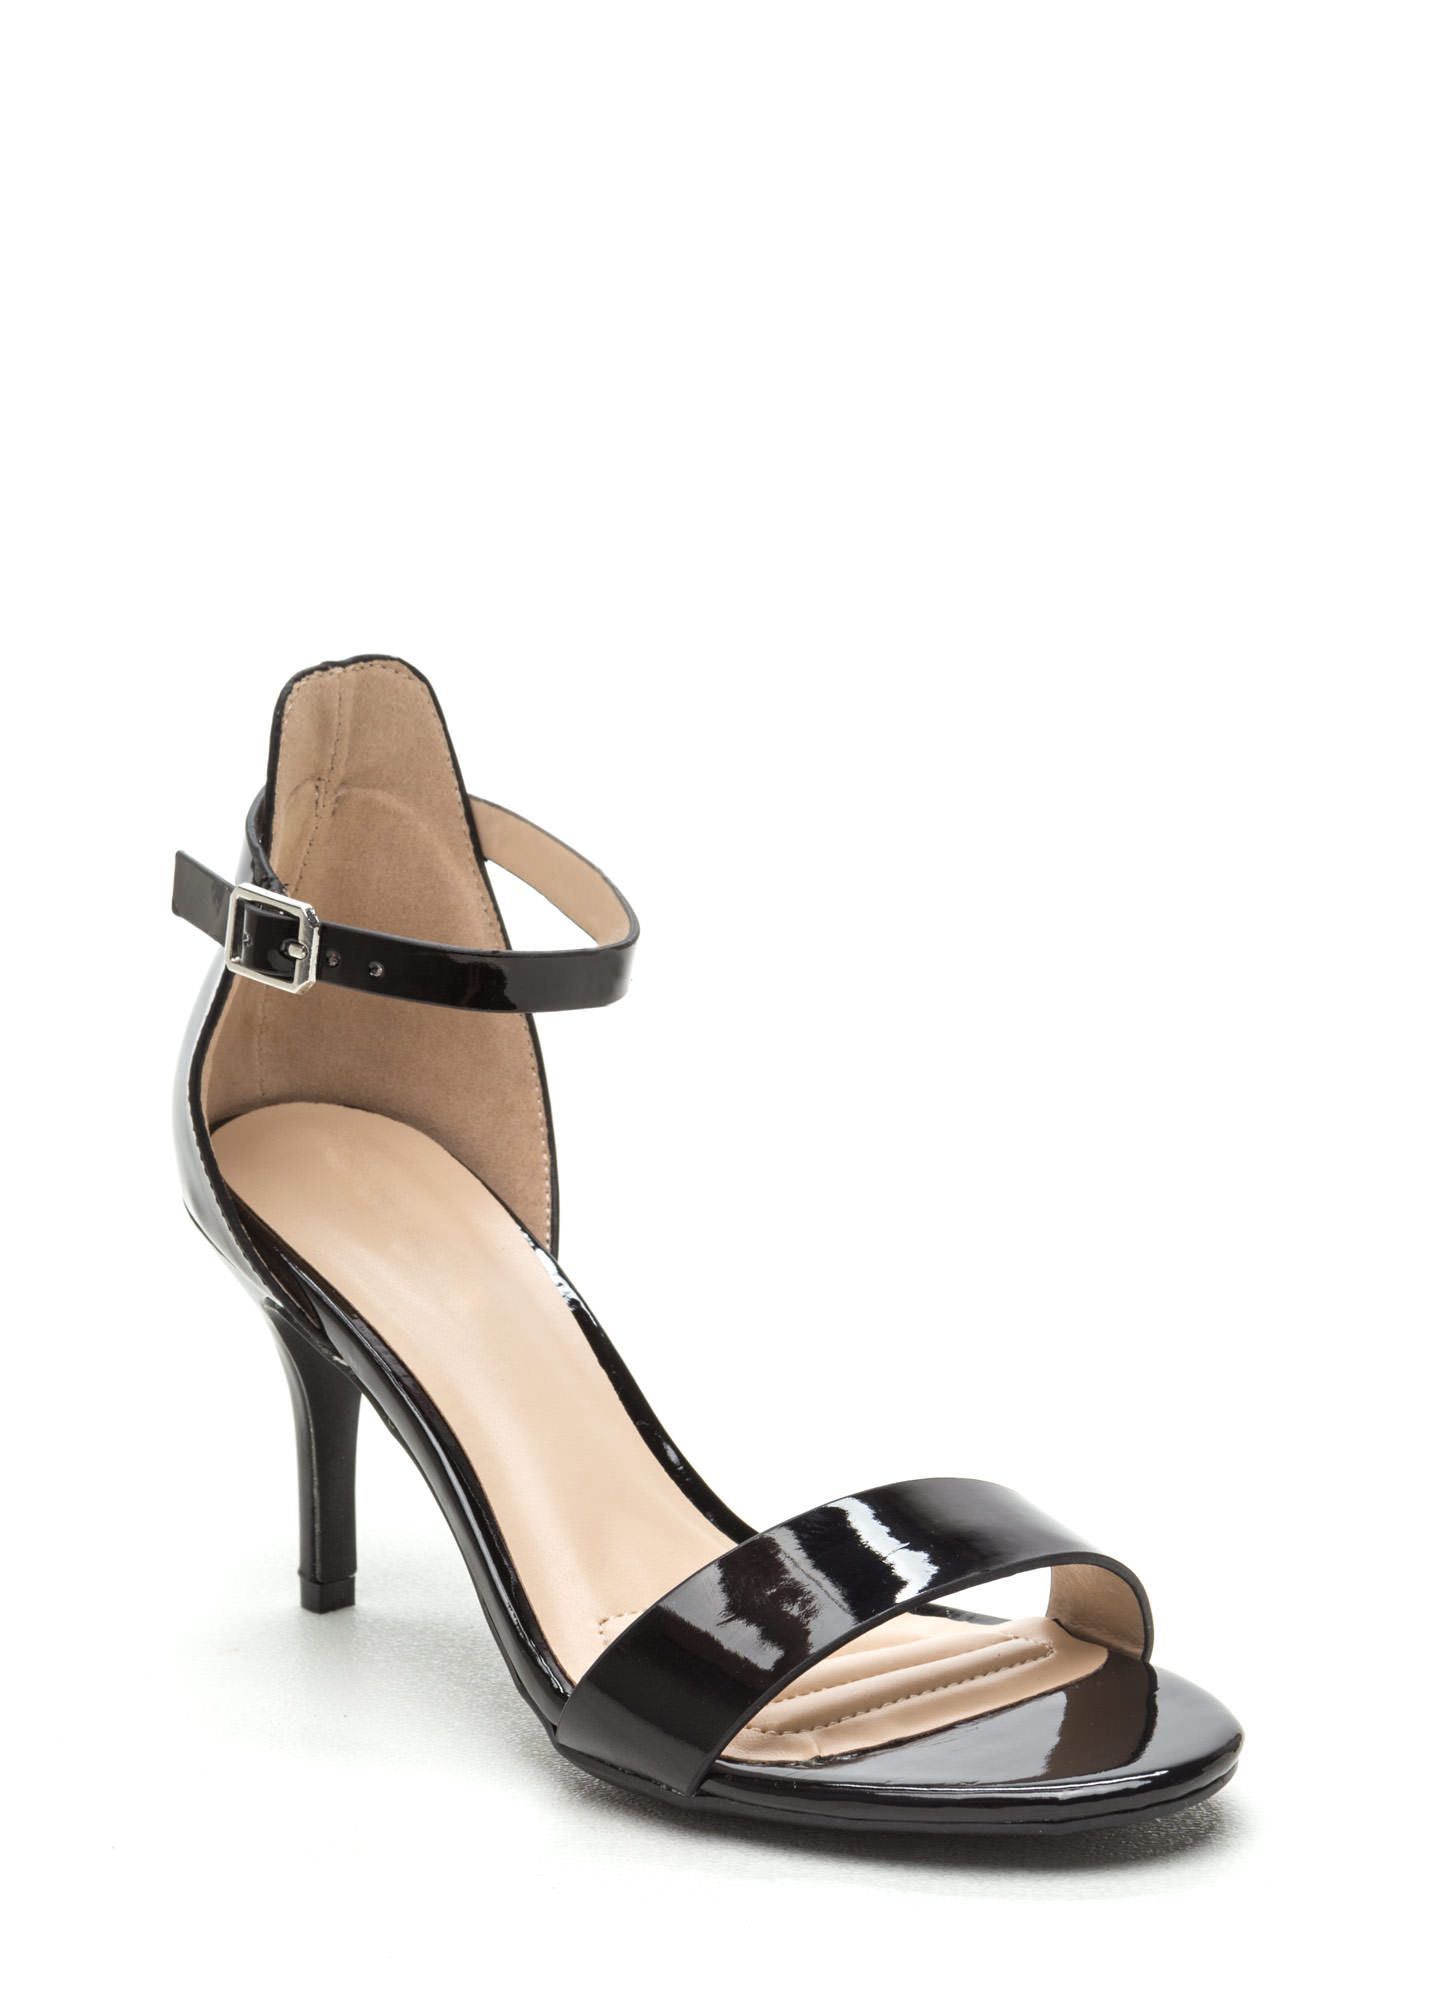 6f449f949cf Come Up Short Shiny Strappy Heels BLACK - nude available too. 3 inches high.